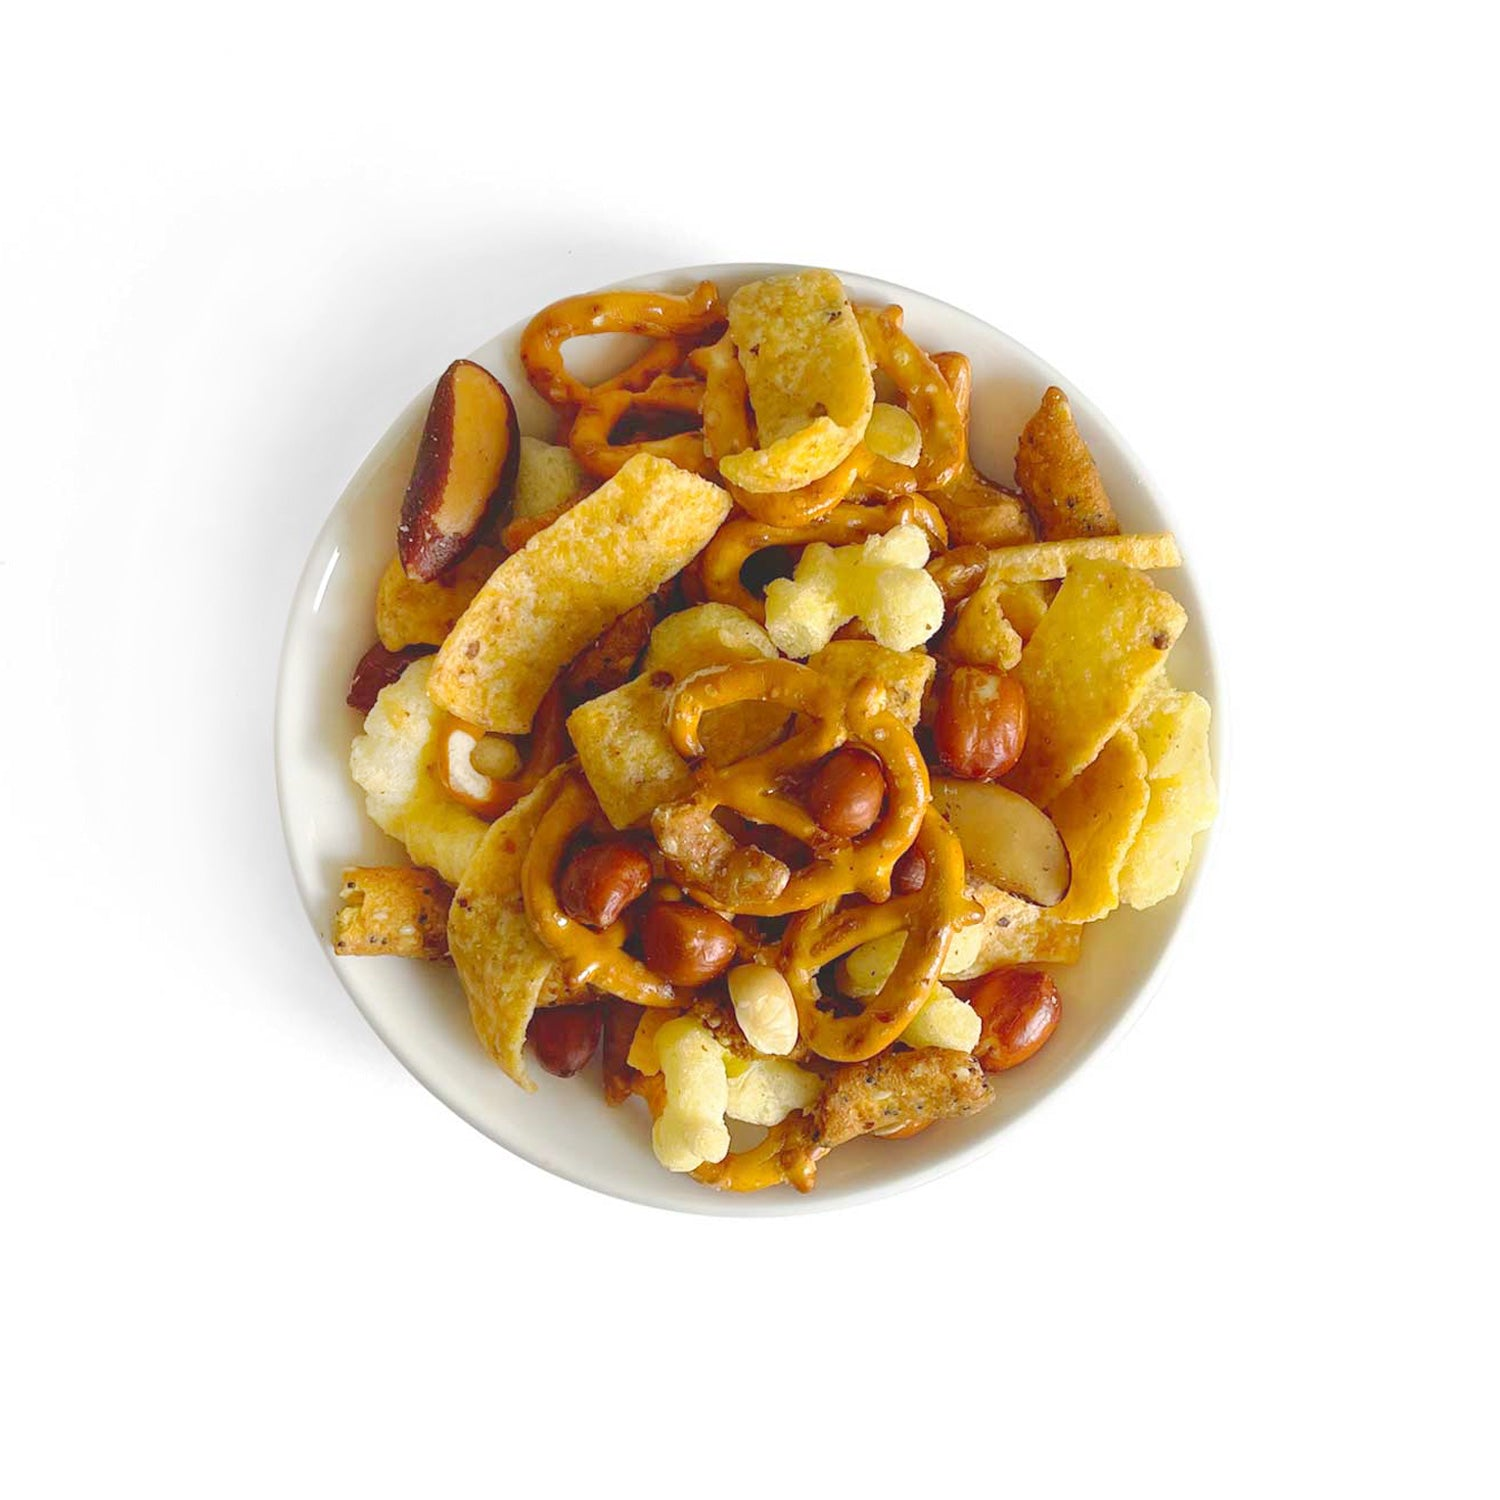 A bowl full of a new twist on a classic snack mix! Contains corn chips and corn puffs, hickory sticks, everything sesame sticks, honey sticks, mini pretzels, salted peanuts, brazils and cashews.